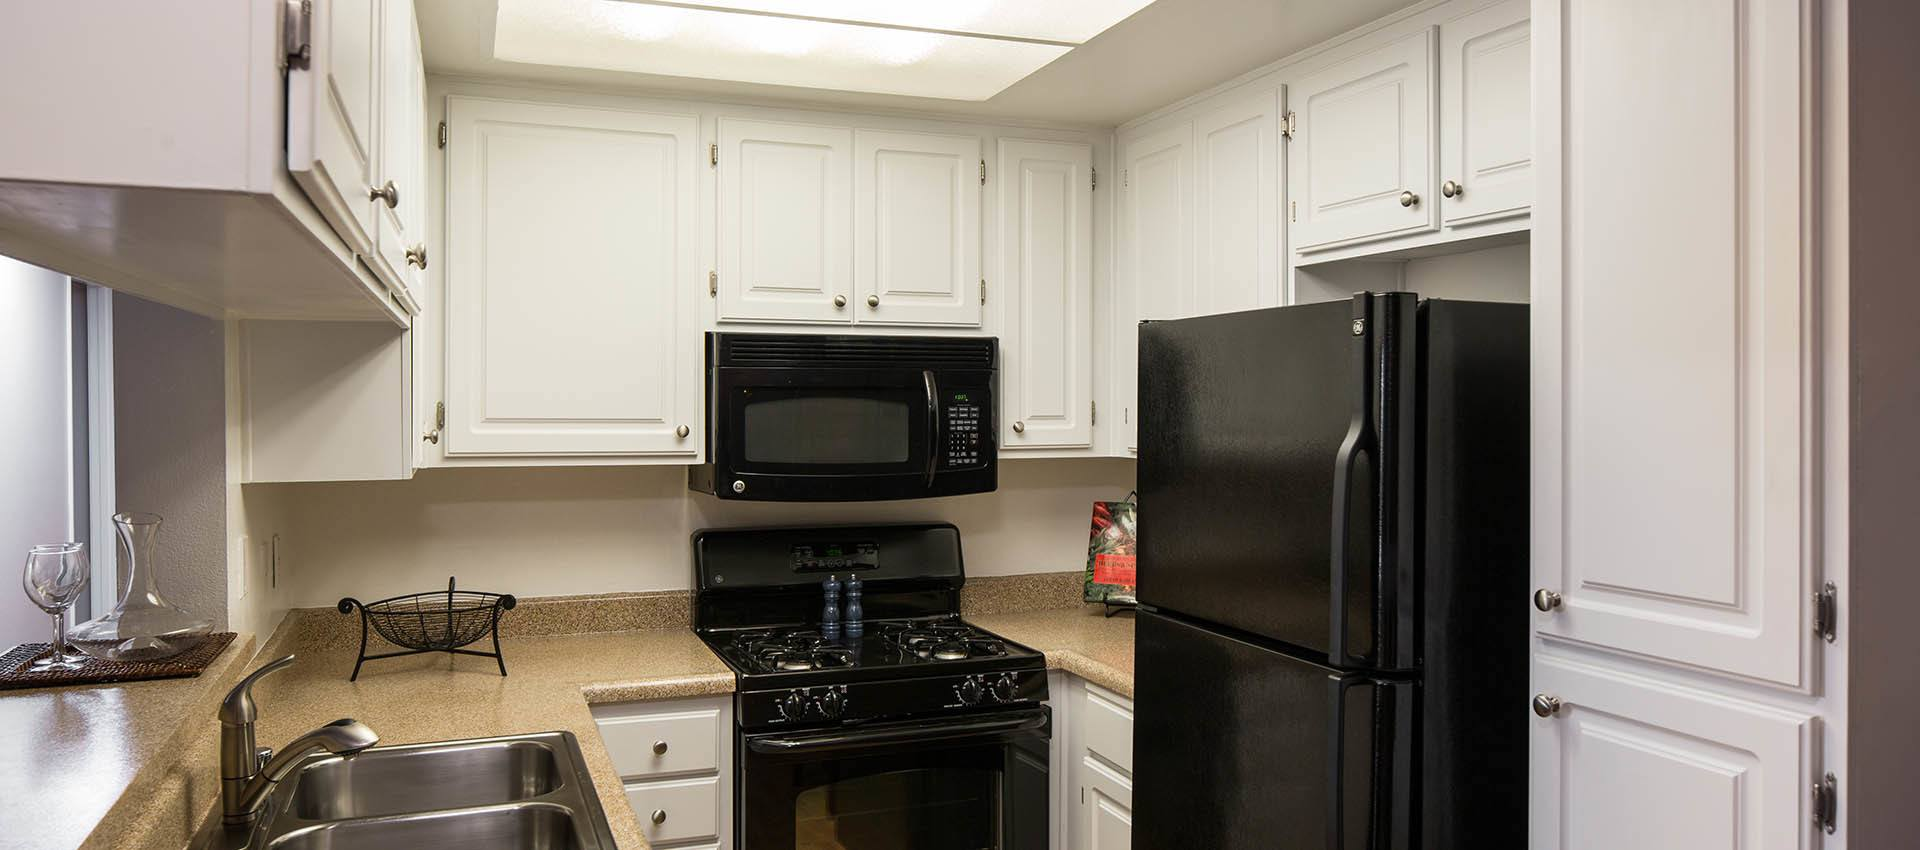 Spacious kitchen at apartments in Simi Valley, CA